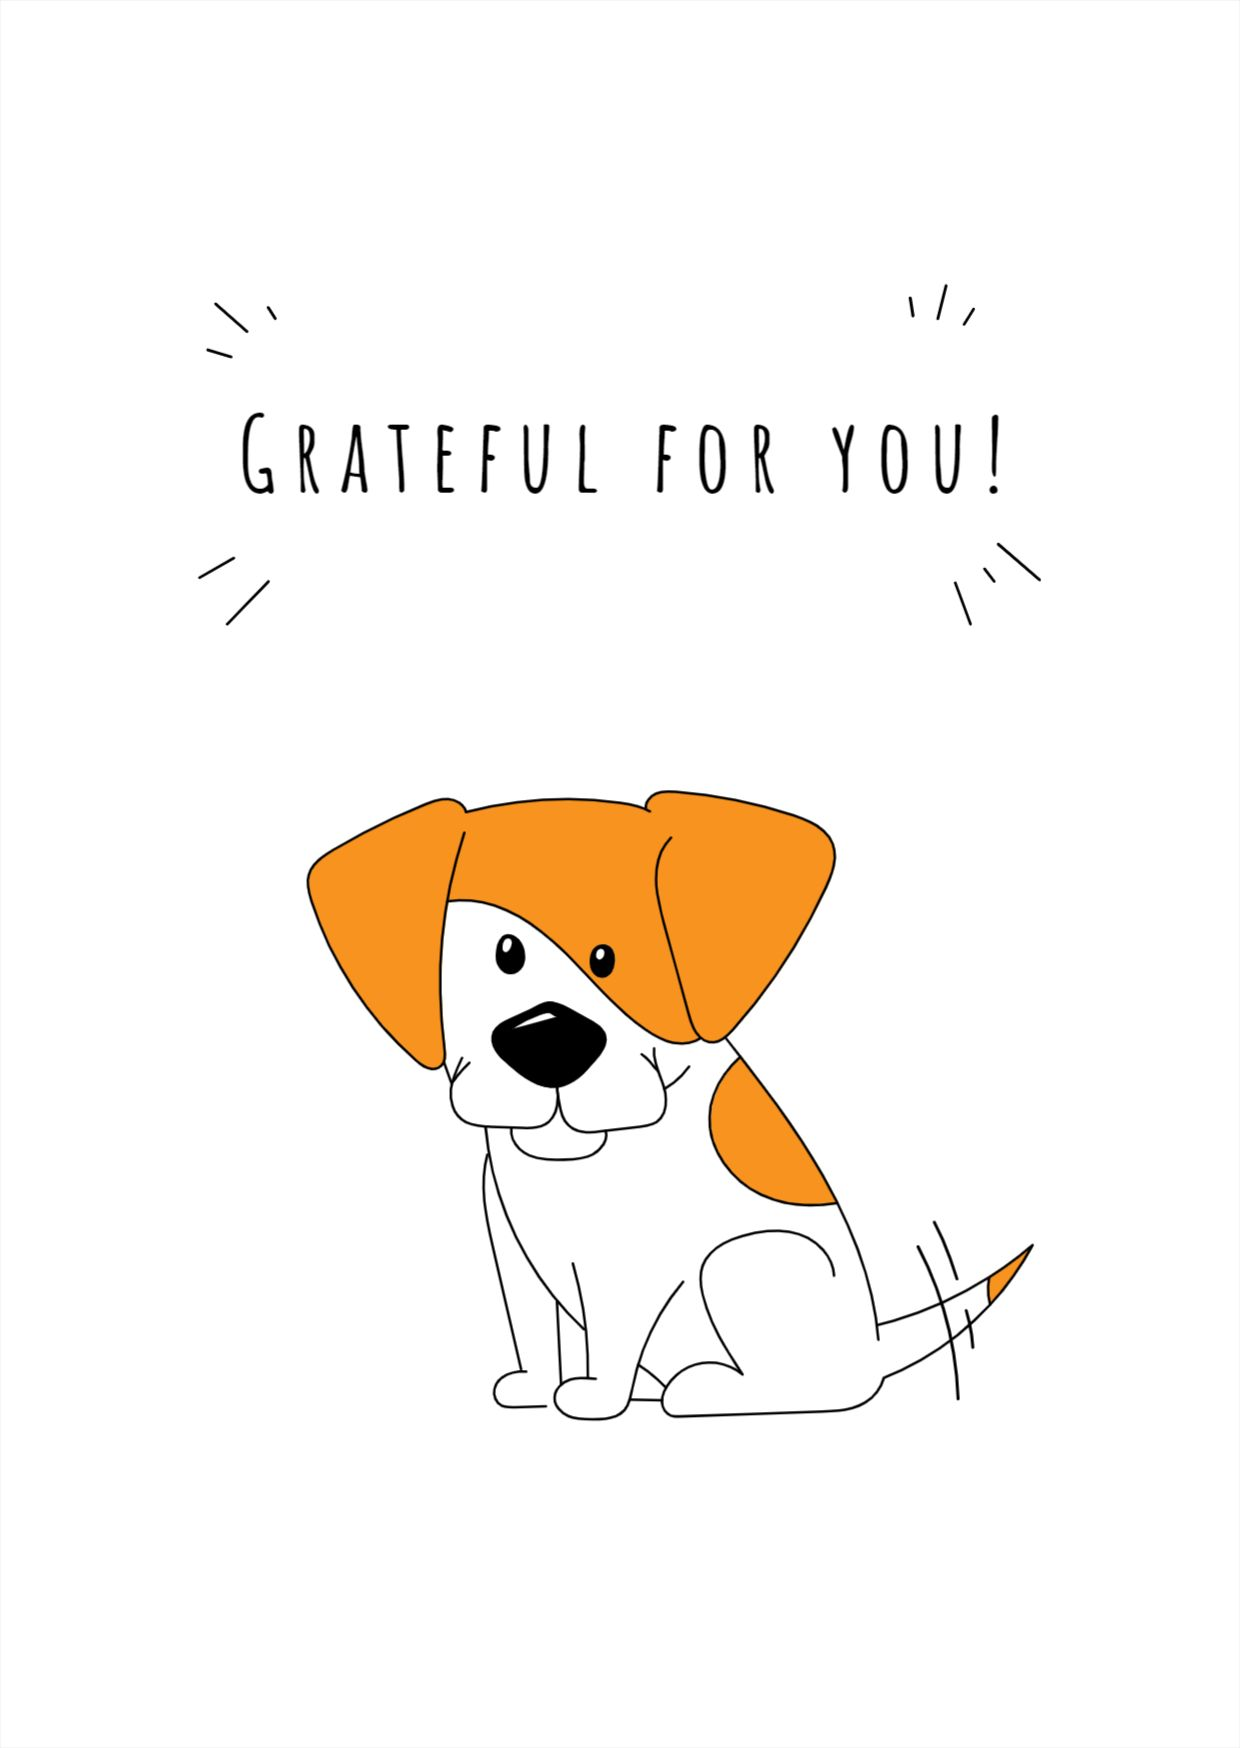 Grateful for You Greeting Card Design Template